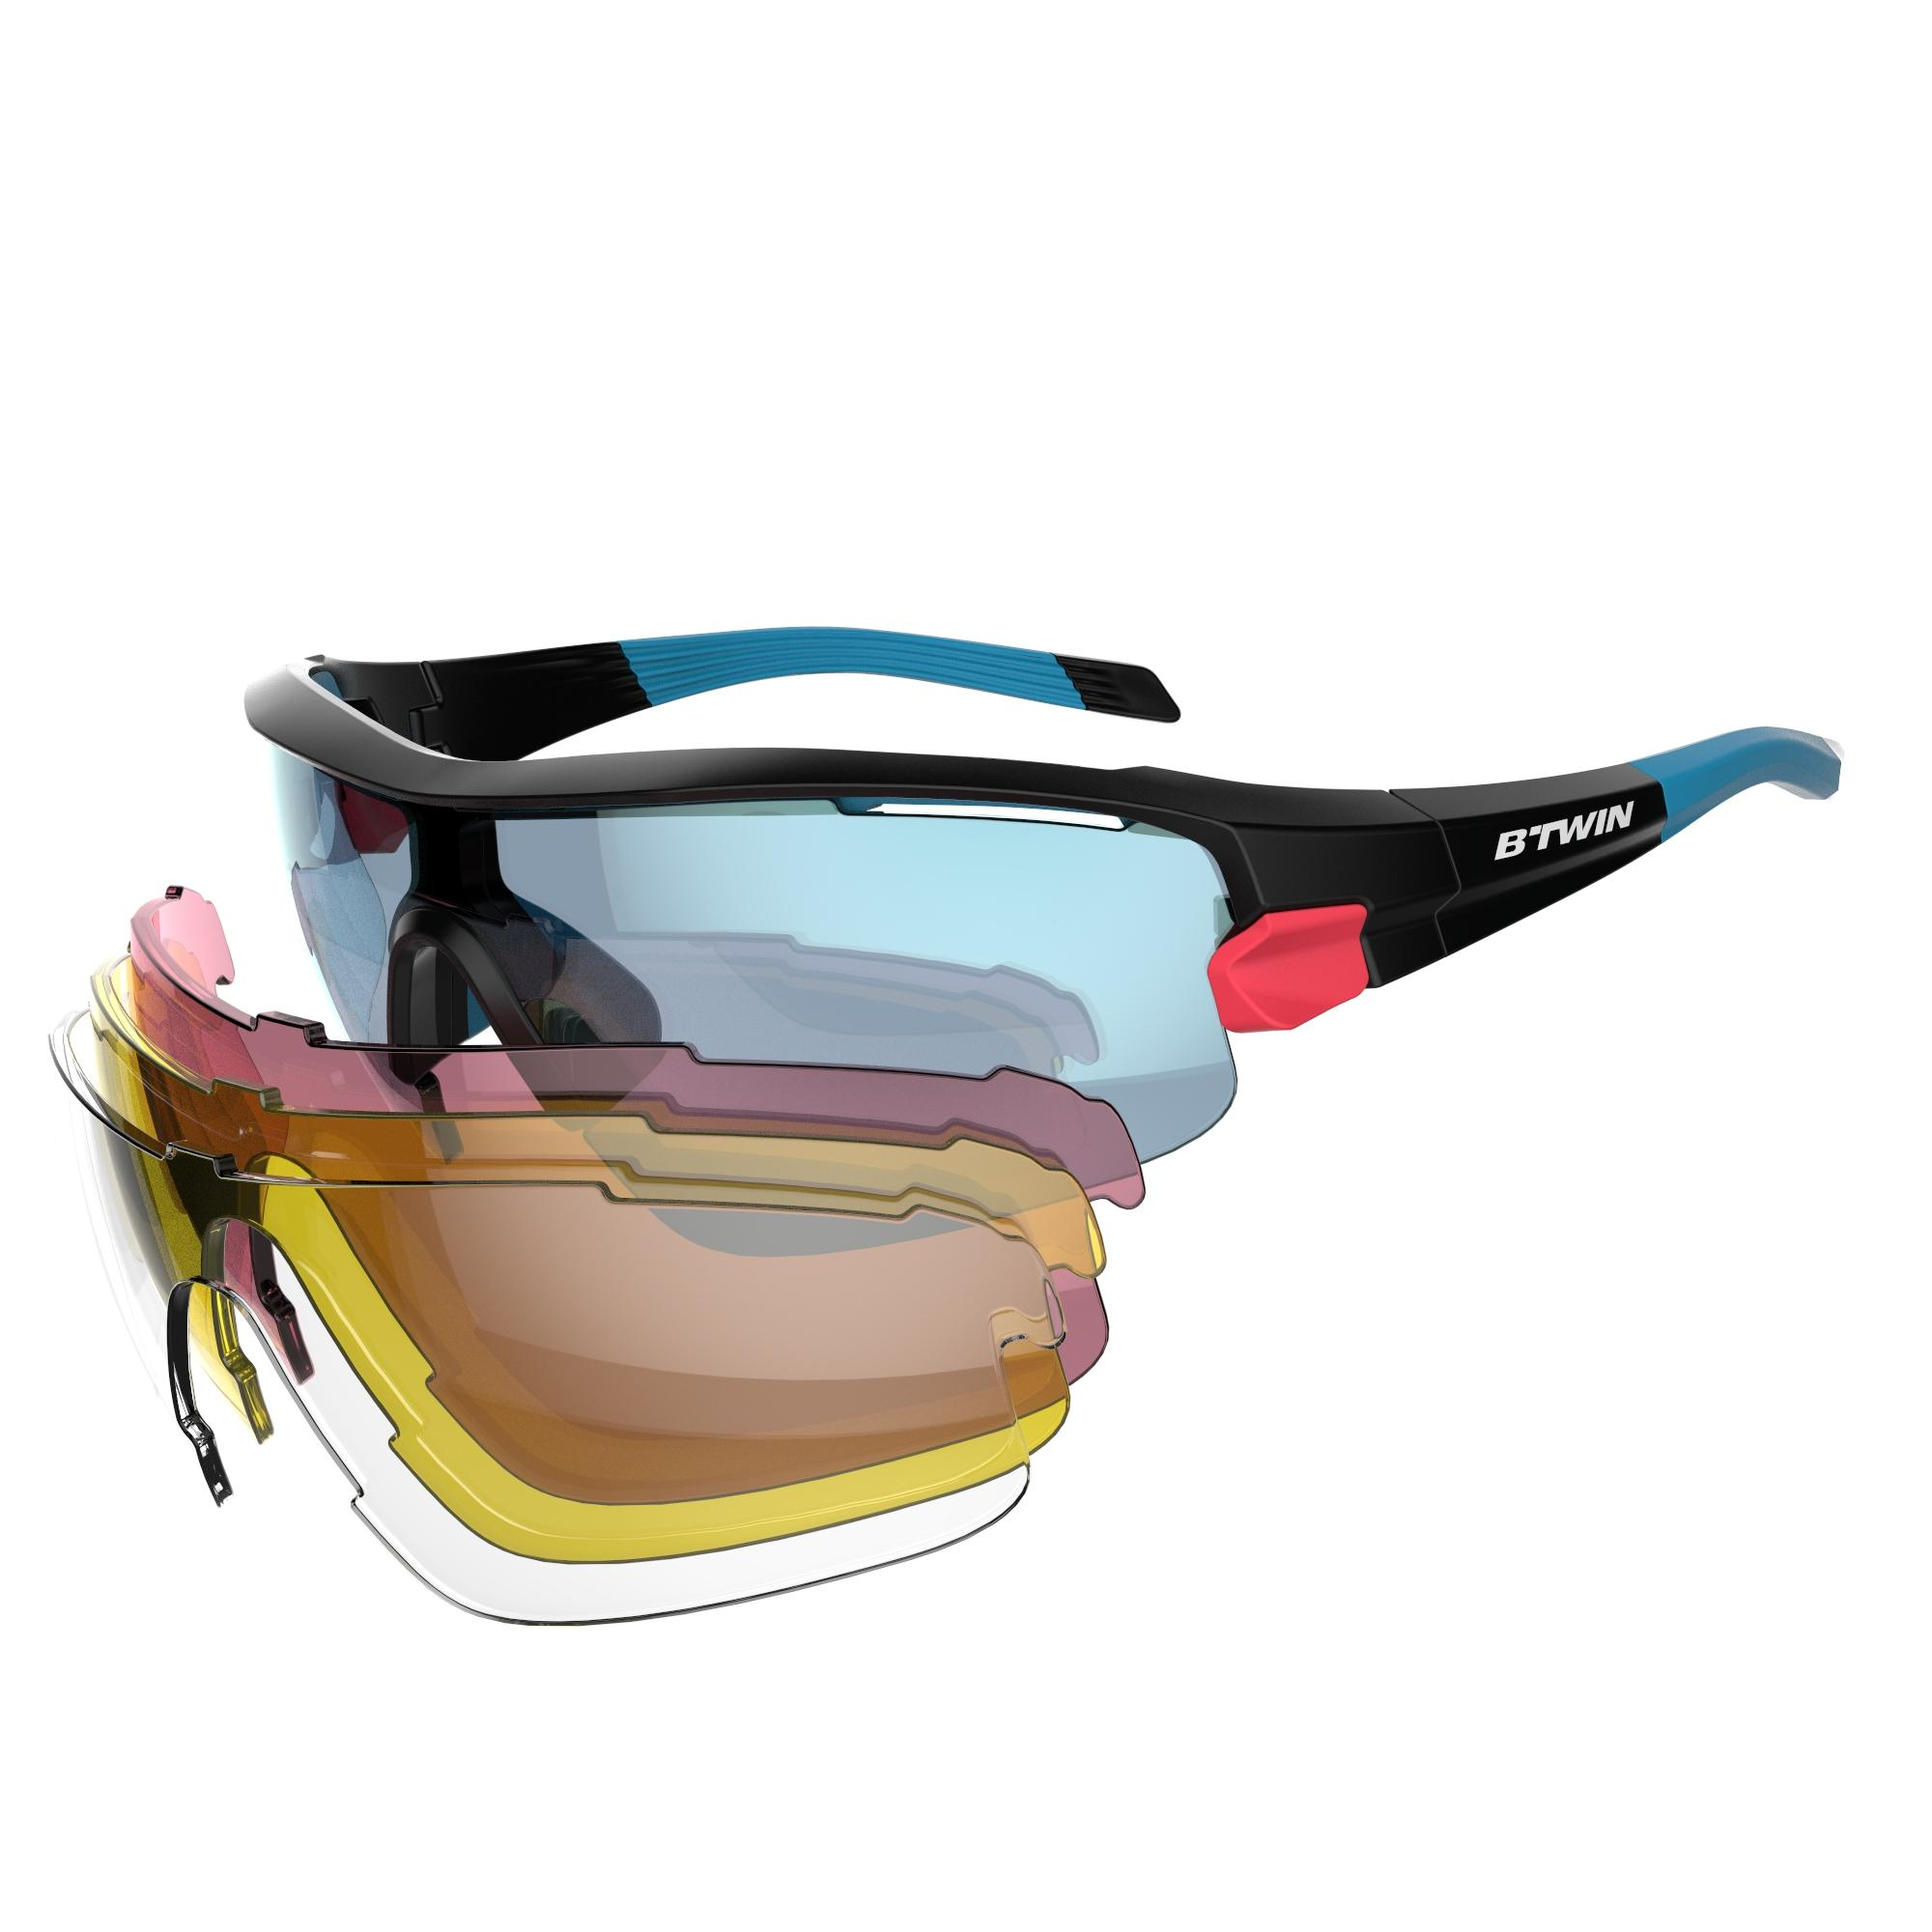 Roadr 900 Cycling Adult Sunglasses With 4-Pack Interchangeable Lenses - Black